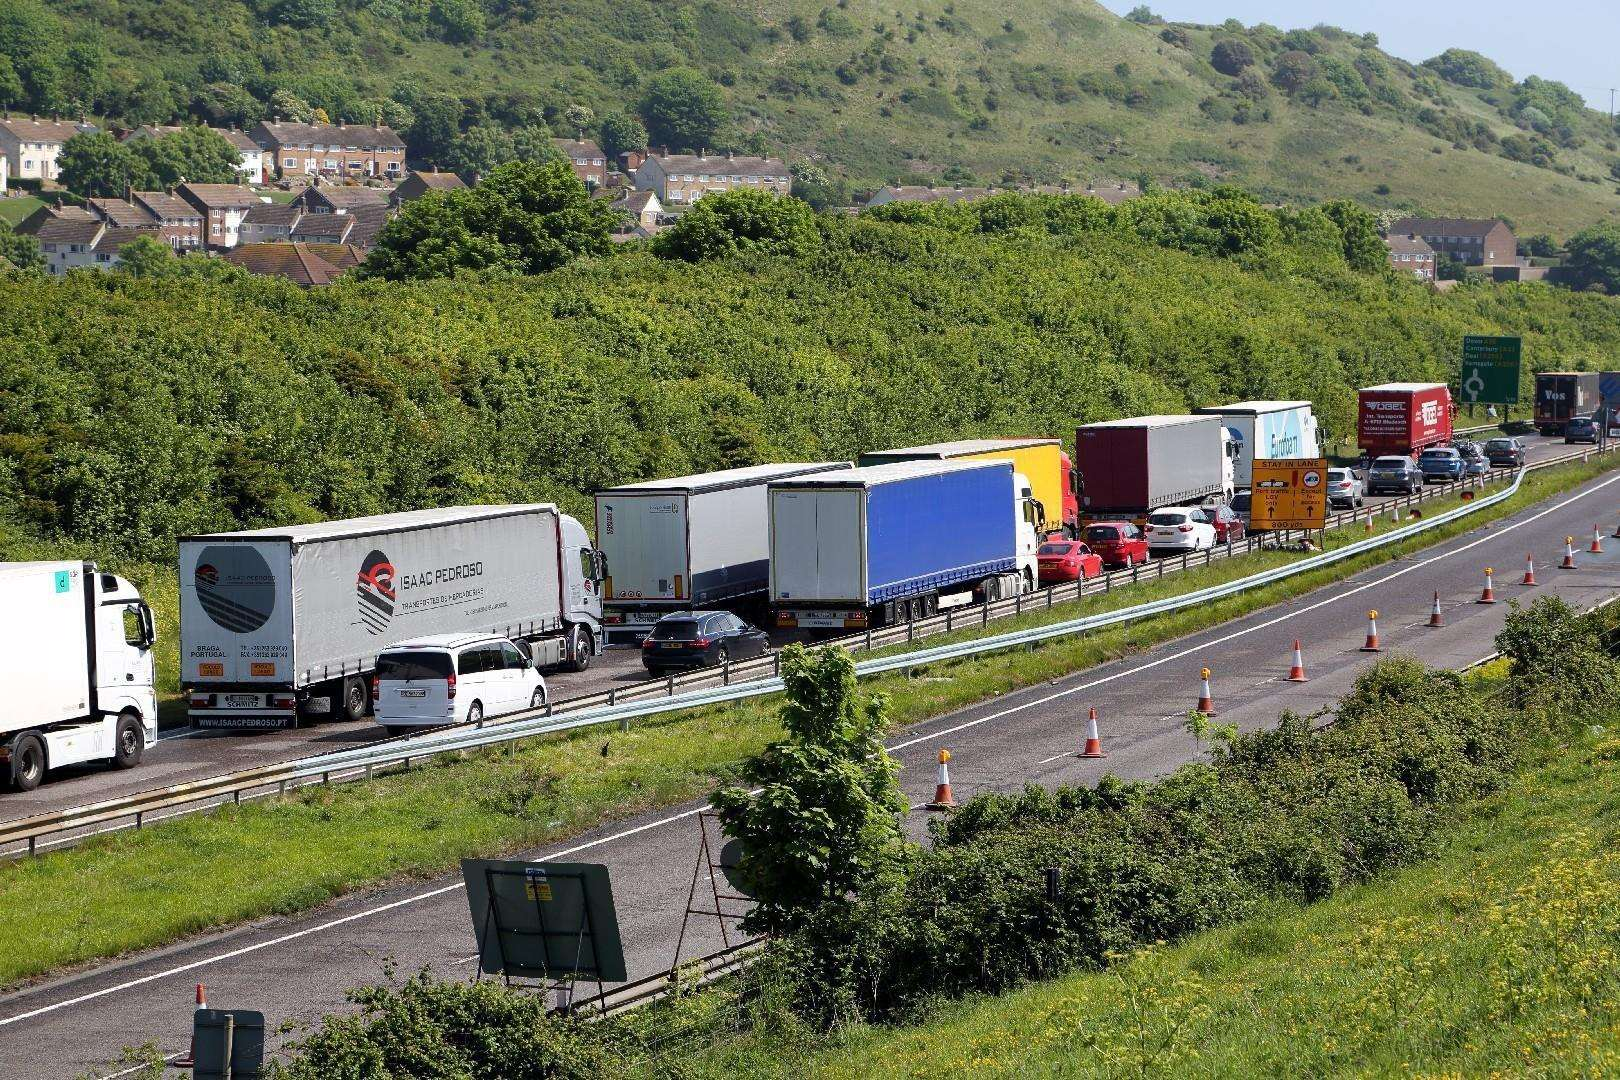 Lorries queued on the A20 heading into Dover. There are concerns Brexit may lead to increased border checks for lorries, leading to large queues